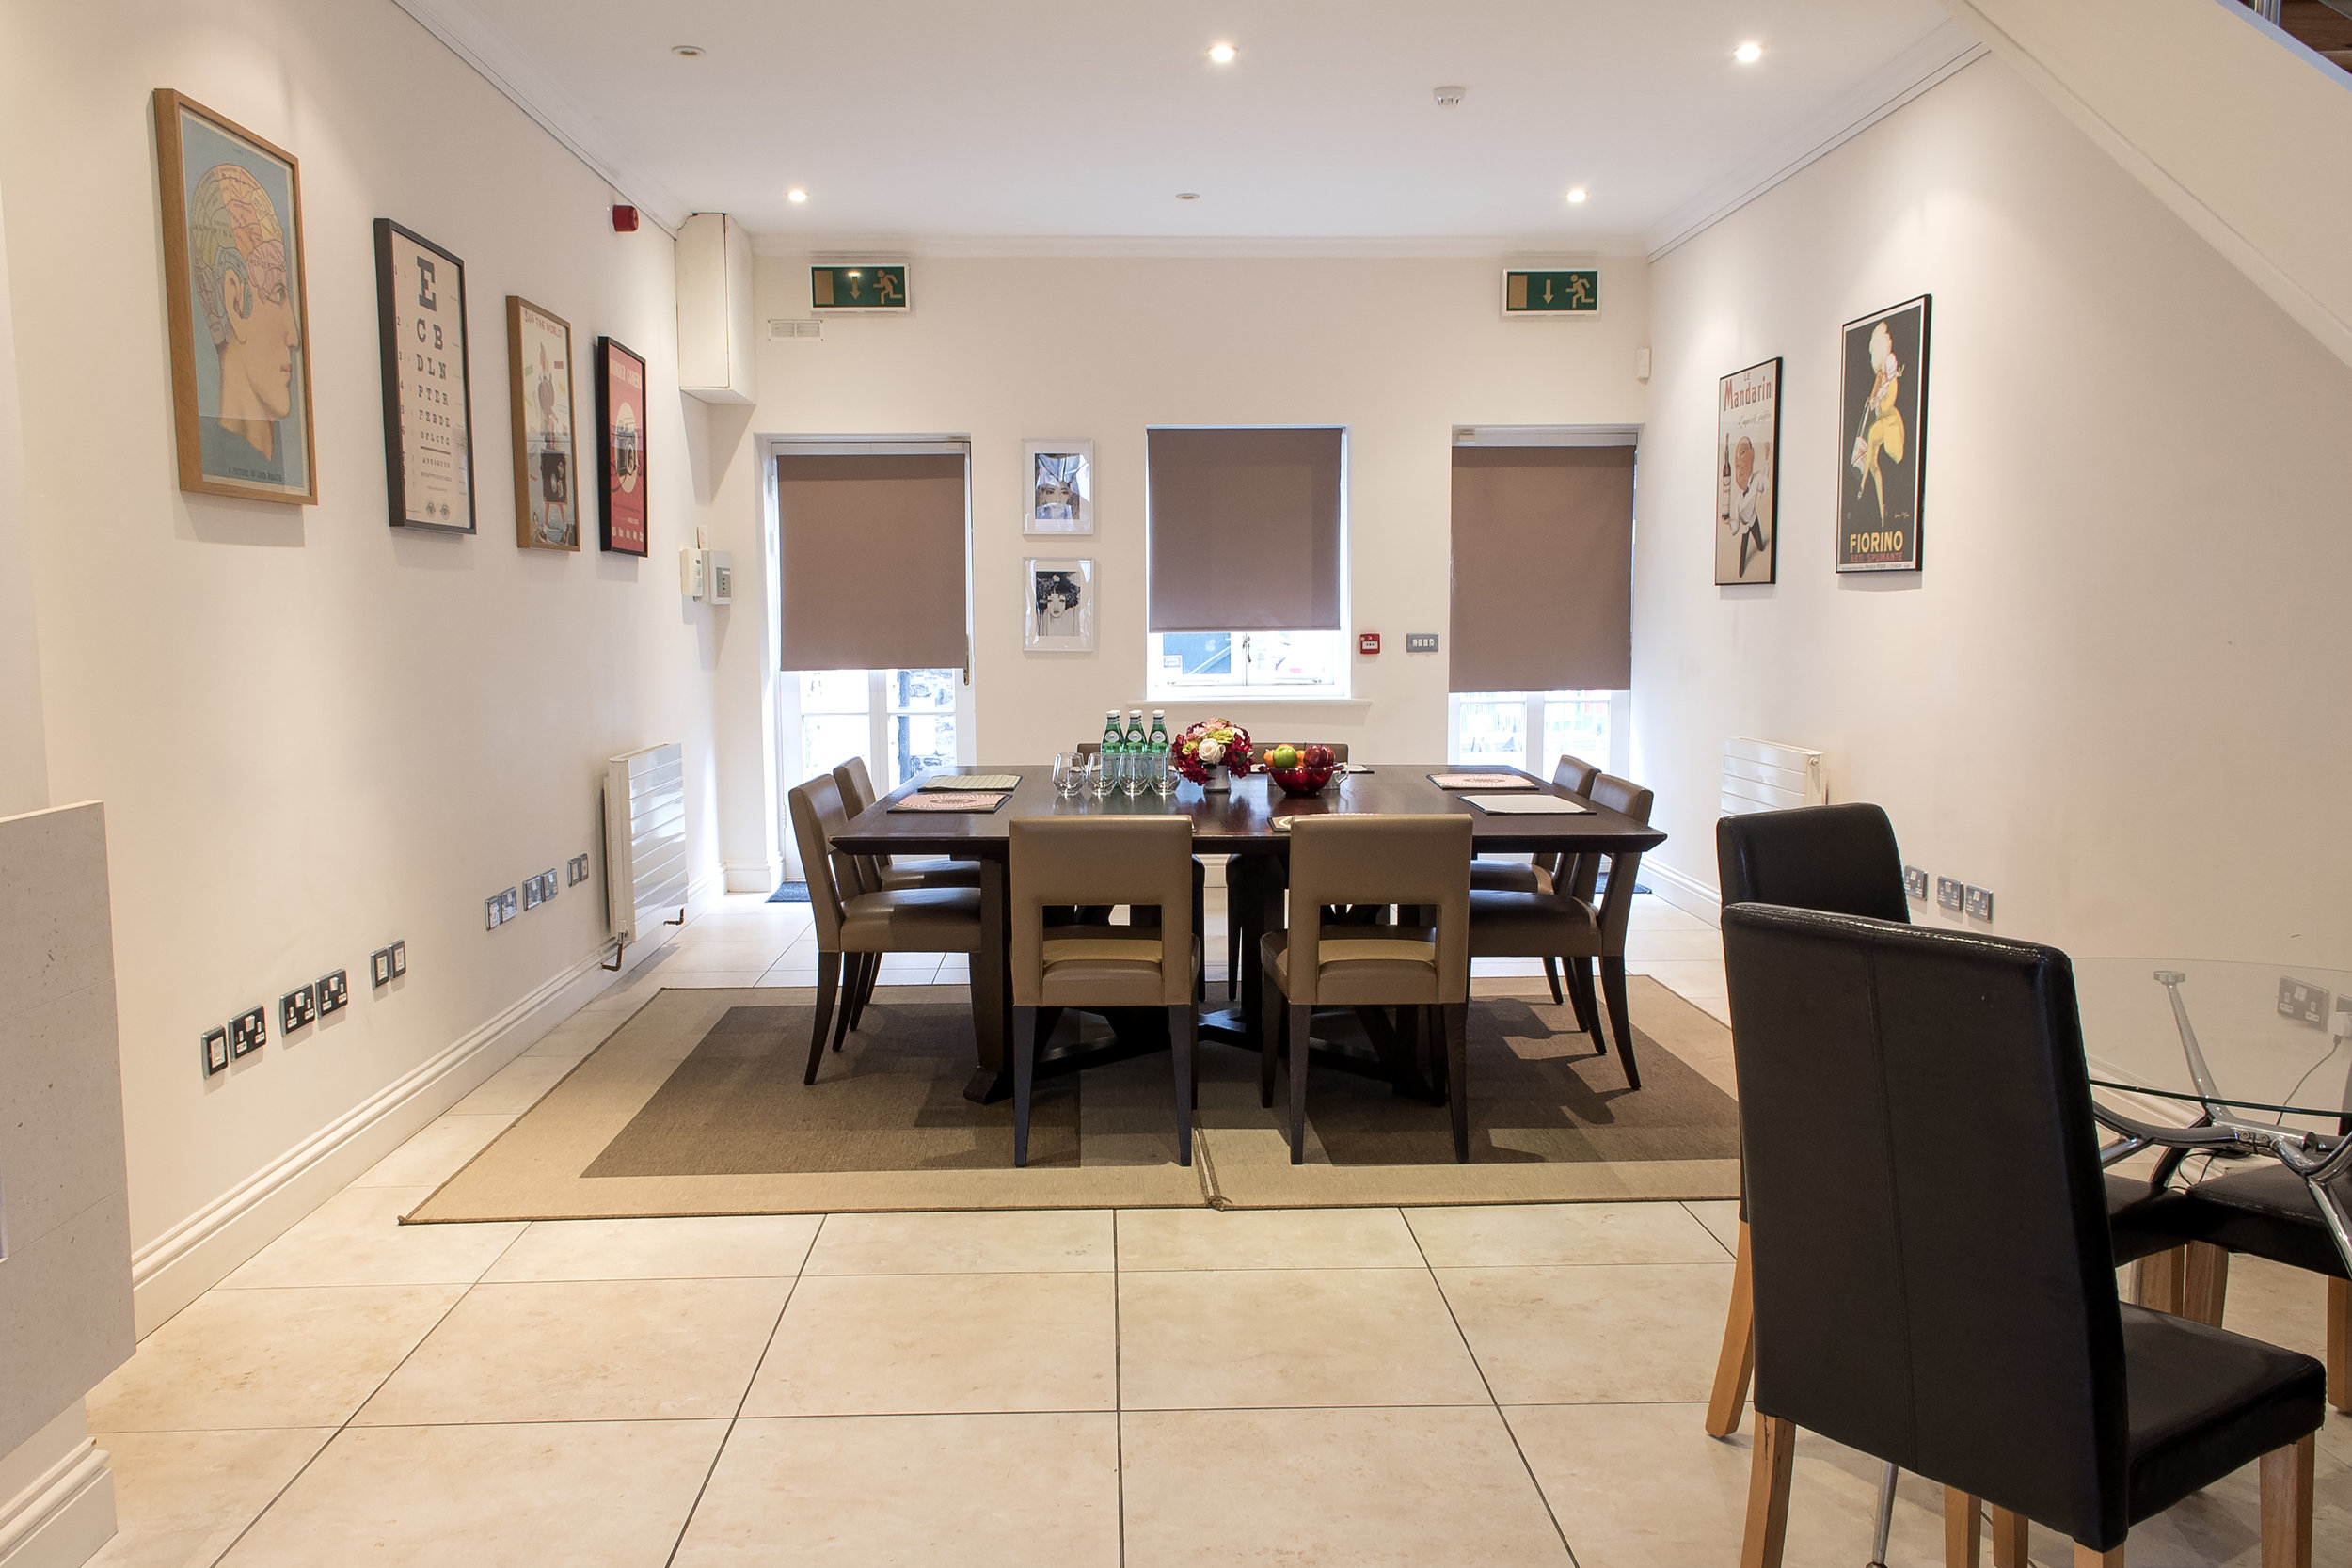 meeting rooms - Dry Hire Packages from 295 plus VAT Per DayFull service Packages from 450 plus VATINCLUDES:Exclusive use of either venuecomplementary breakfast pastriesall stationary, wifi and use of technologycappuccinos, Teas, Coffees, waters, crisps, chocolatesordering and serving lunch at cost *complementary morning and afternoon tea *Dedicated assistant **Full Service Only